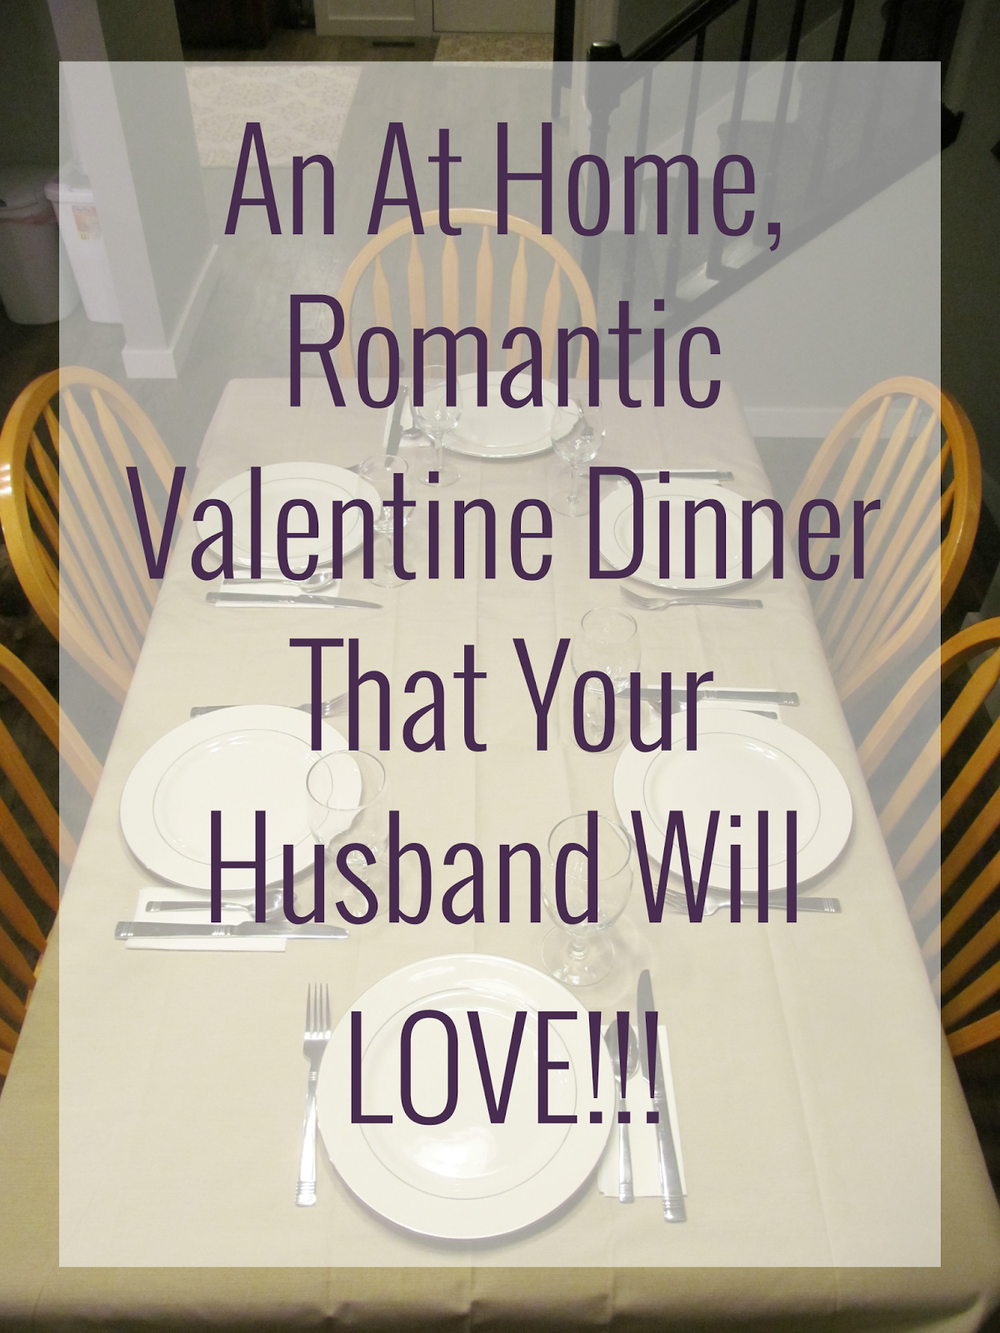 Have a romantic Valentine dinner at home.